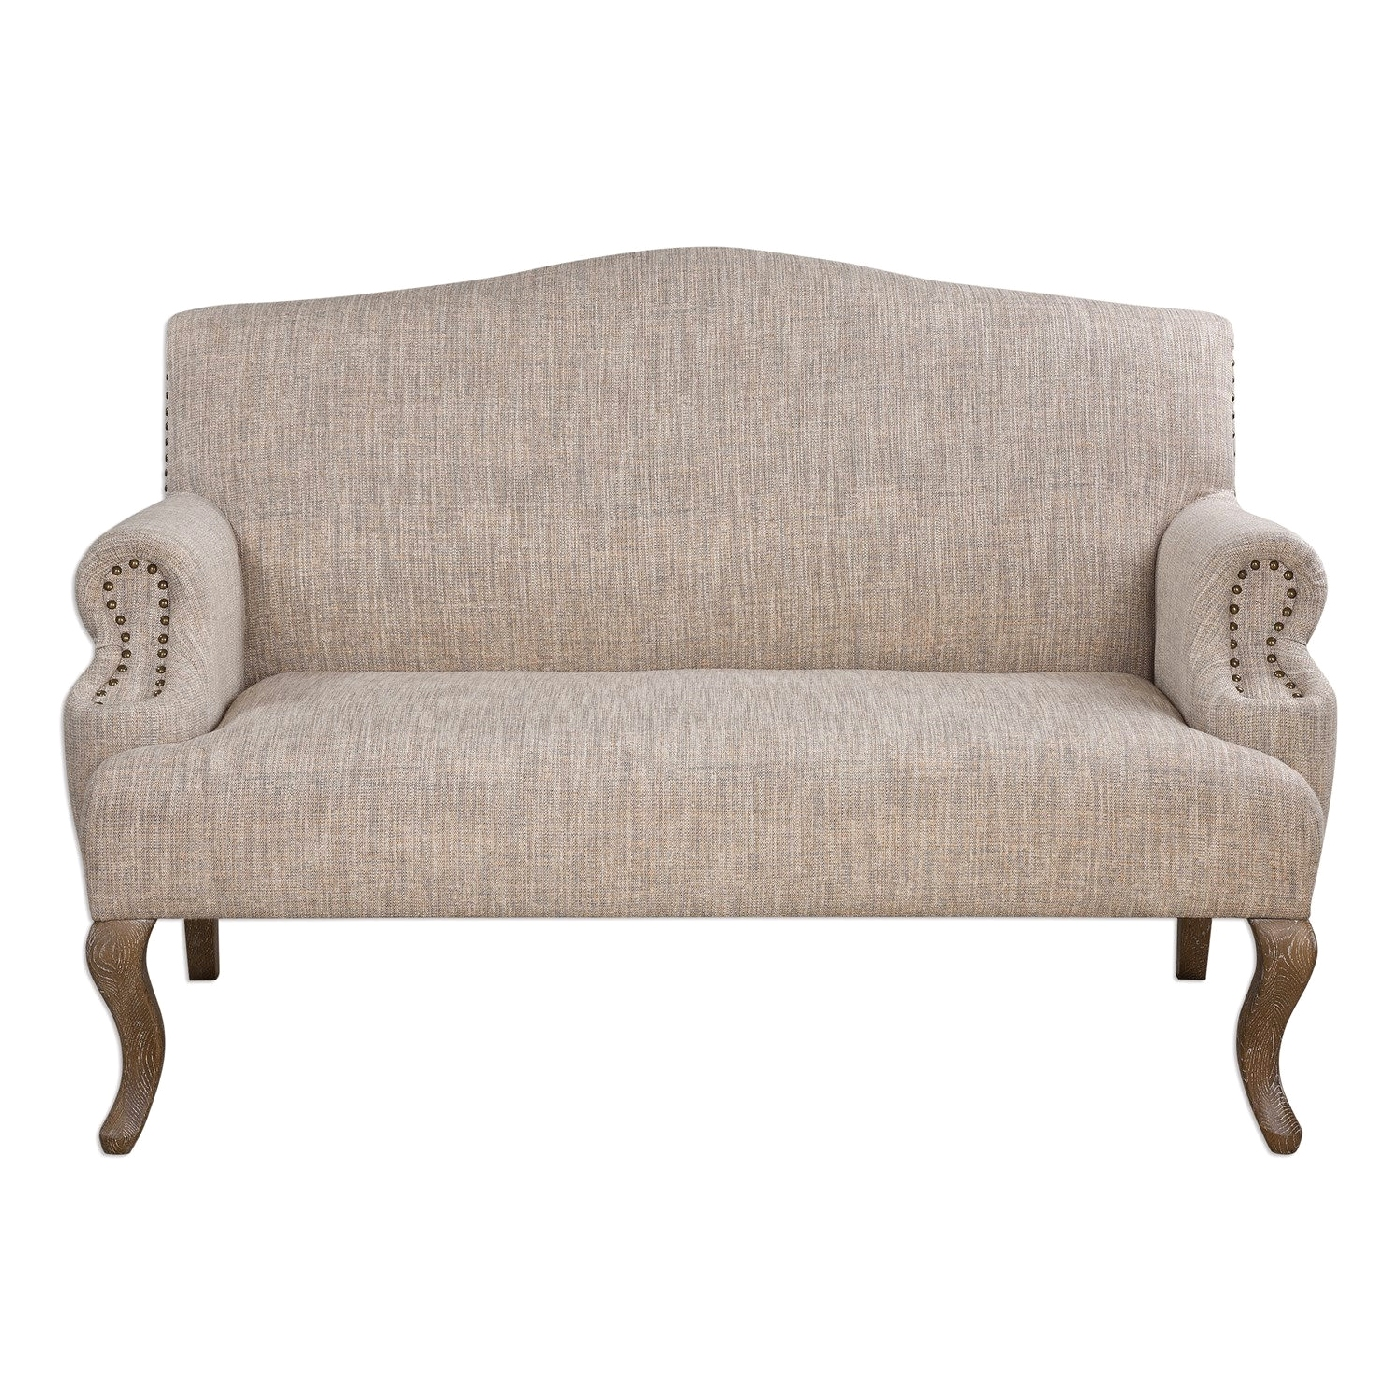 Rigina Camelback Soft Tan Loveseat With Brass Nailhead Trim Oak Cabriole Legs